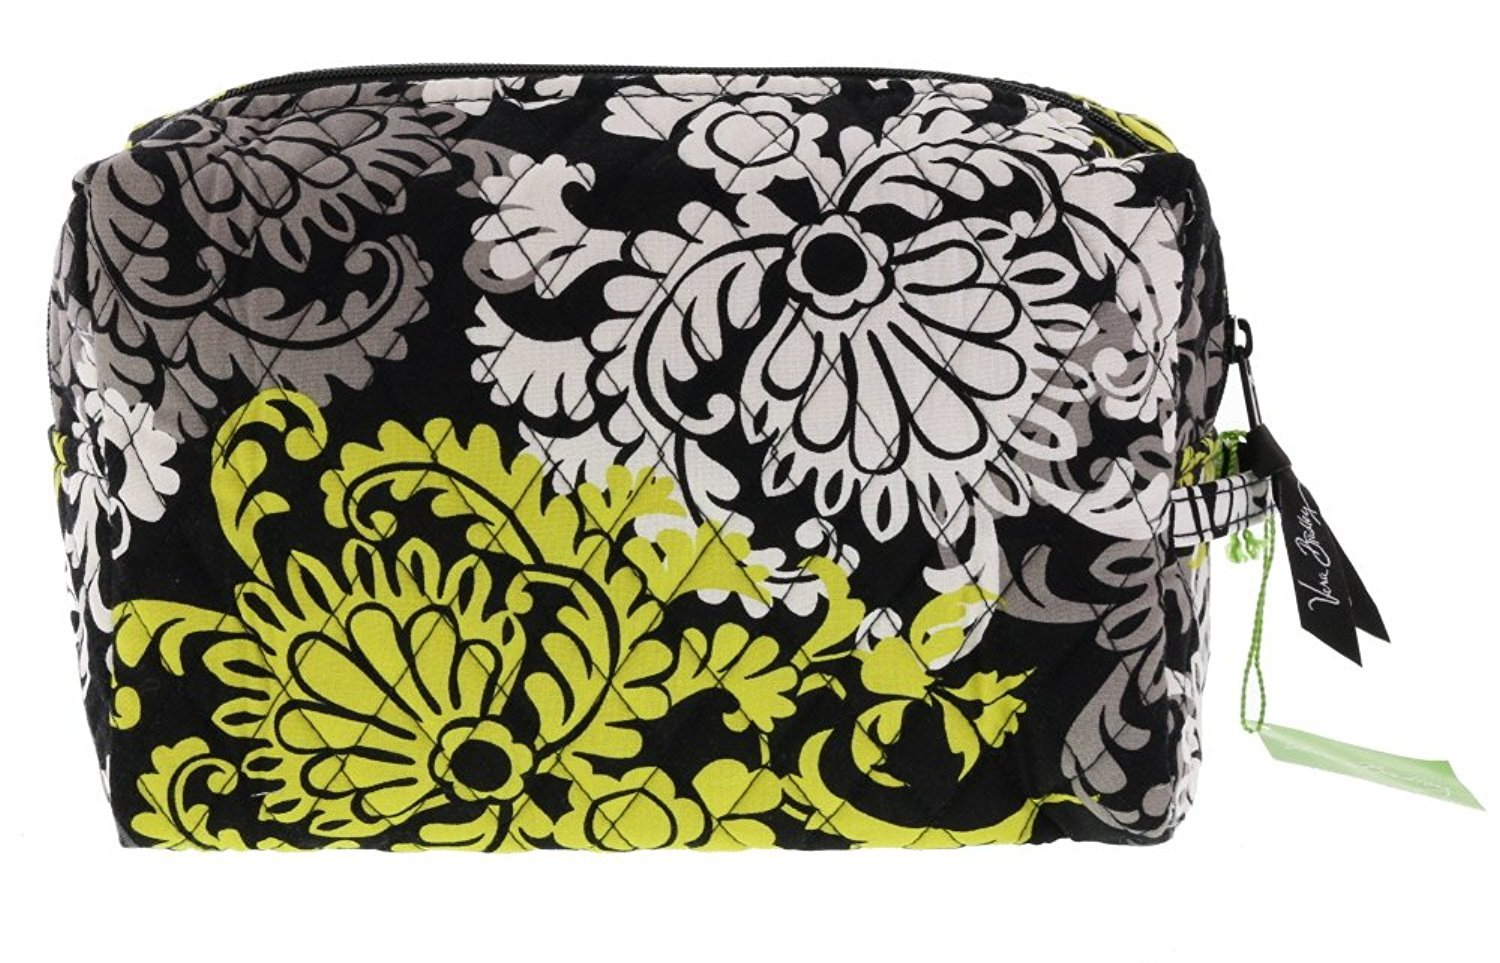 7170bbf699e9 Get Quotations · Vera Bradley Small Cosmetic Bag in Baroque (with solid  black interior)